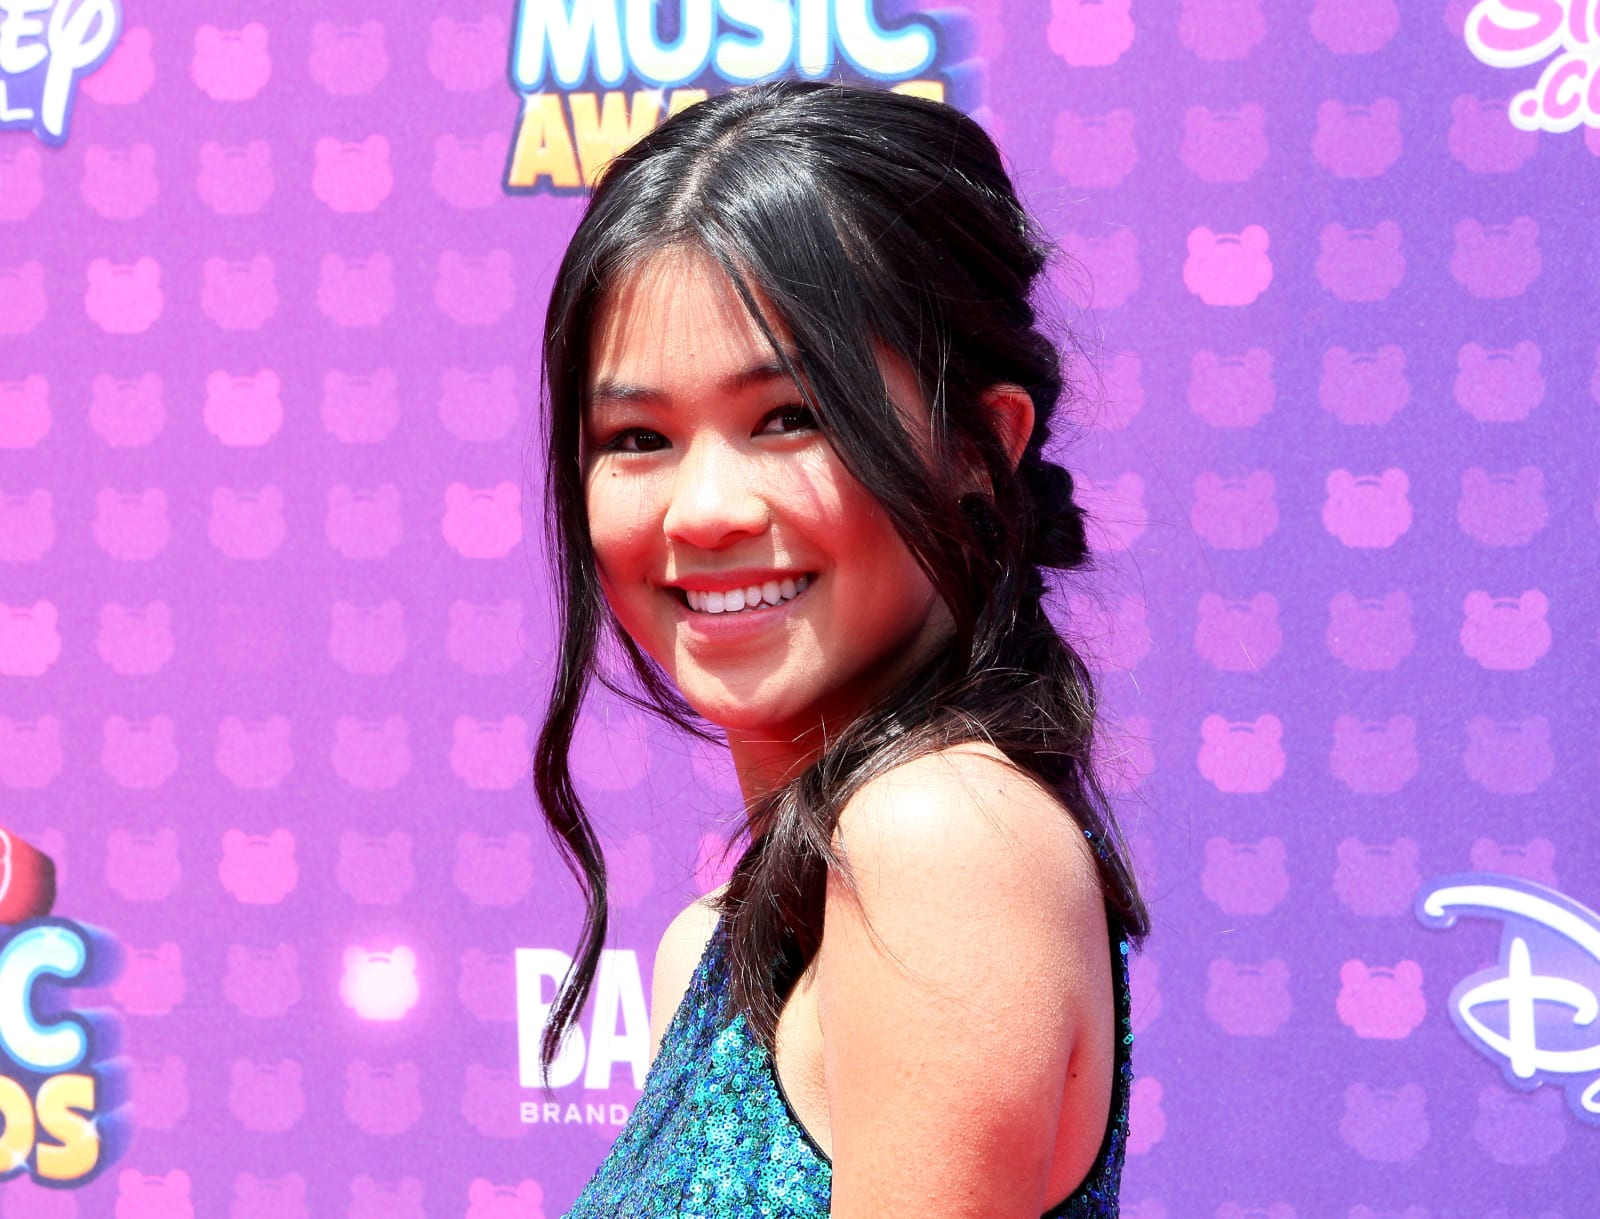 LOS ANGELES, CA - APRIL 30: Actress Tiffany Espensen attends the 2016 Radio Disney Music Awards at Microsoft Theater on April 30, 2016 in Los Angeles, California. (Photo by David Livingston/Getty Images)